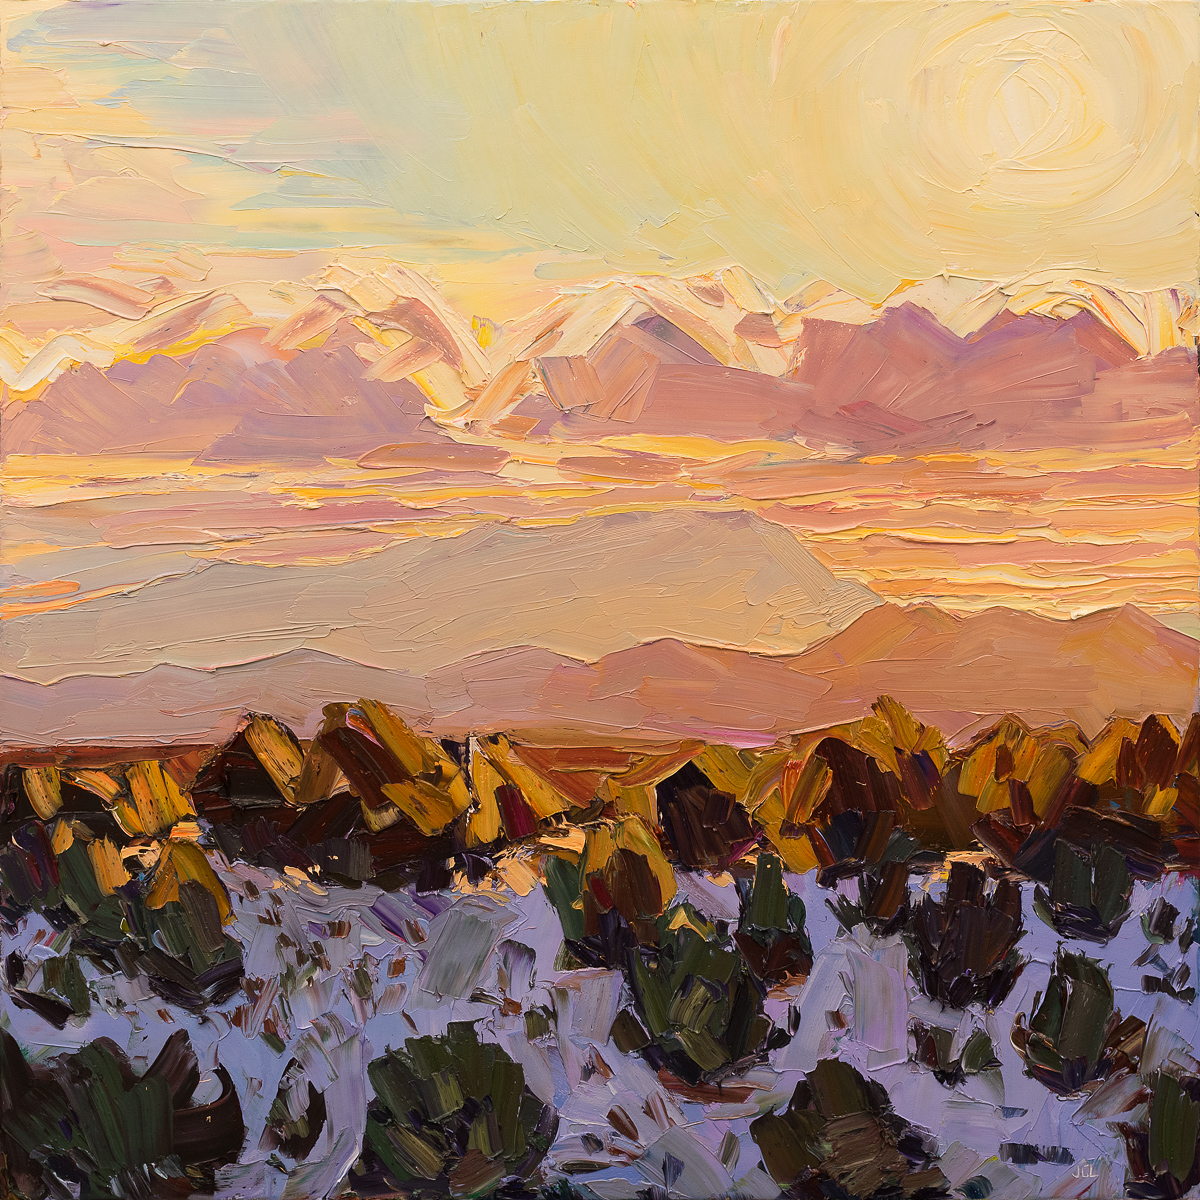 Santa Fe overlook #8 - sunset snow